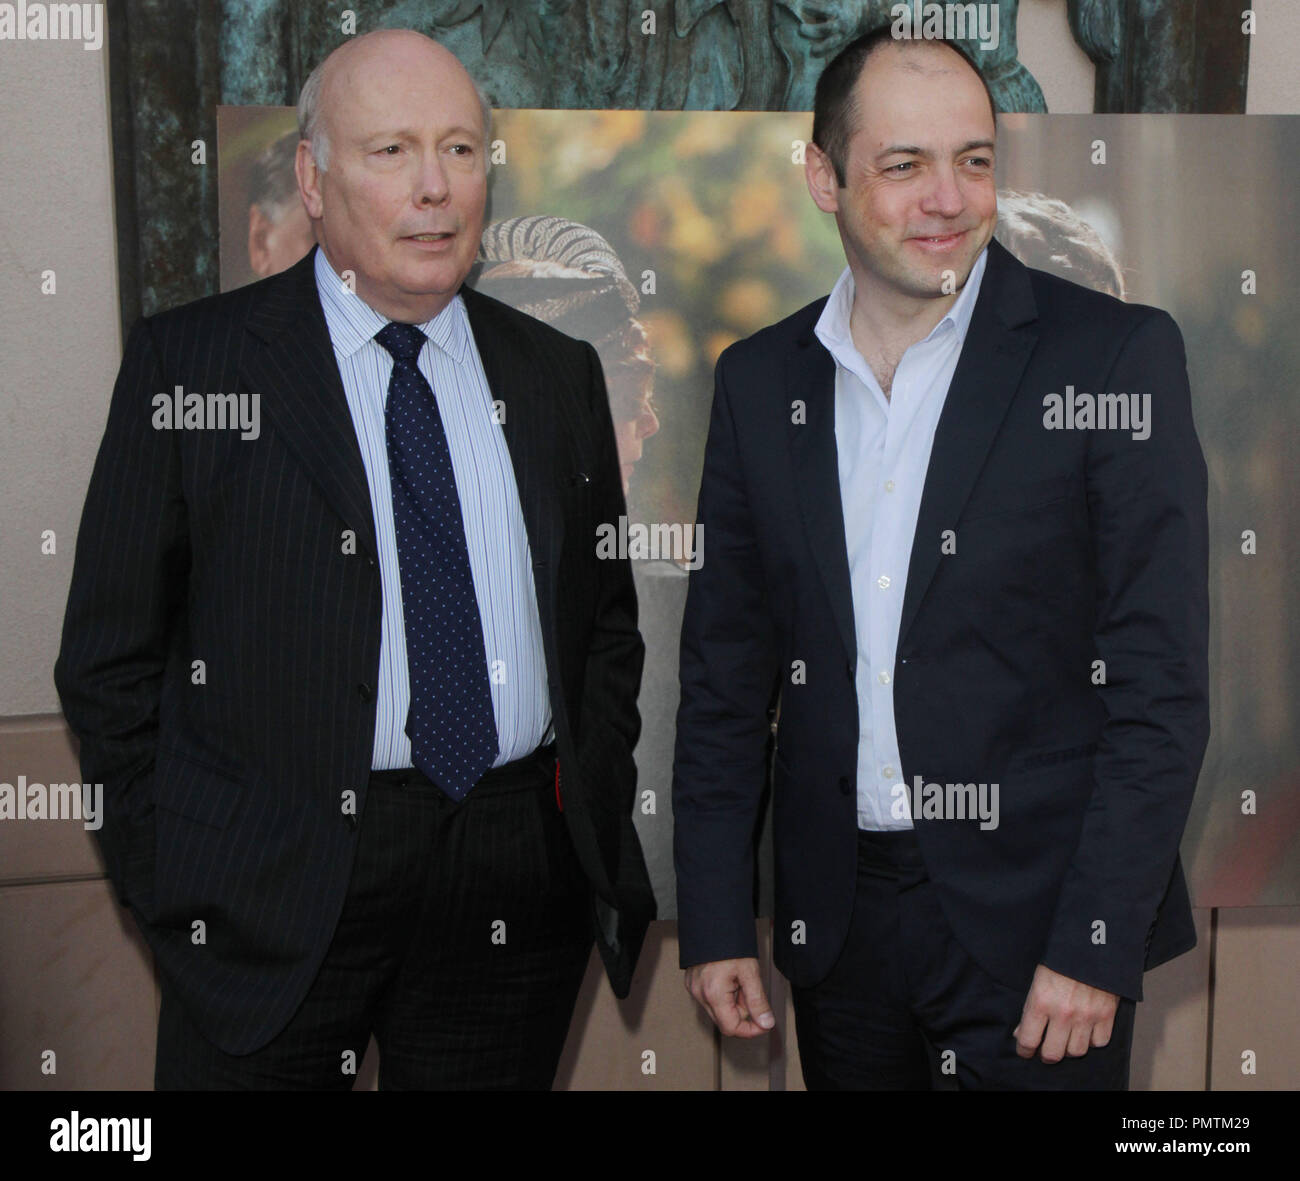 Julian Fellowes & Gareth Neame attends An Evening With 'Downton Abbey' held at the Leonard H. Goldenson Theatre in North Hollywood, CA. The event took place on Monday, June 10, 2013.  Photo by Steven Lam_PRPP / PictureLux  File Reference # 31990_042PRPPSL  For Editorial Use Only -  All Rights Reserved - Stock Image